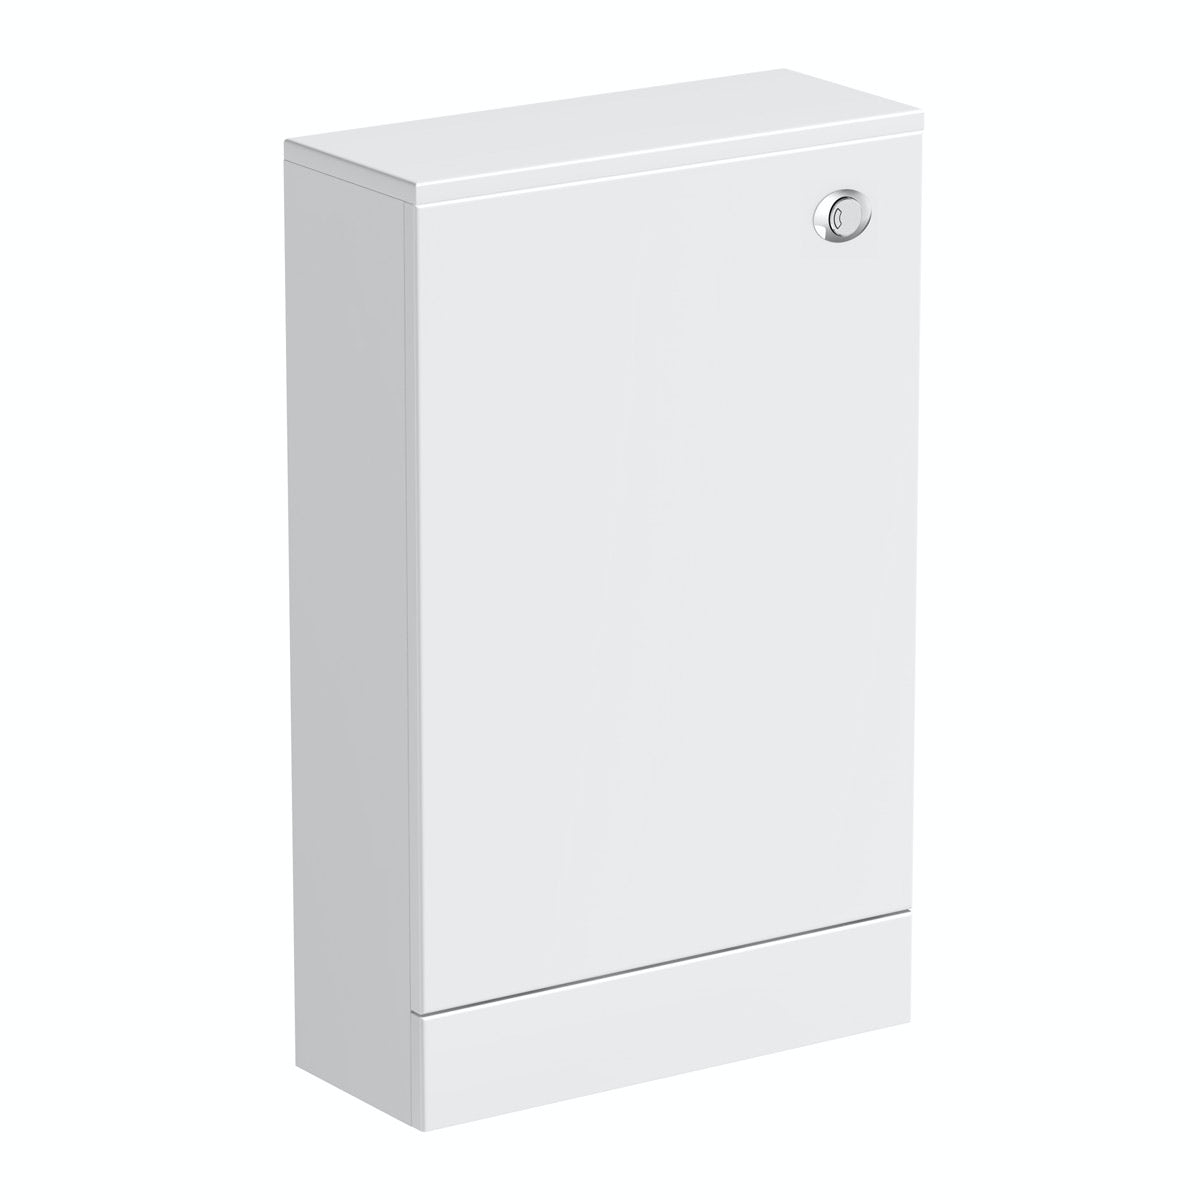 Orchard Derwent white back to wall toilet unit